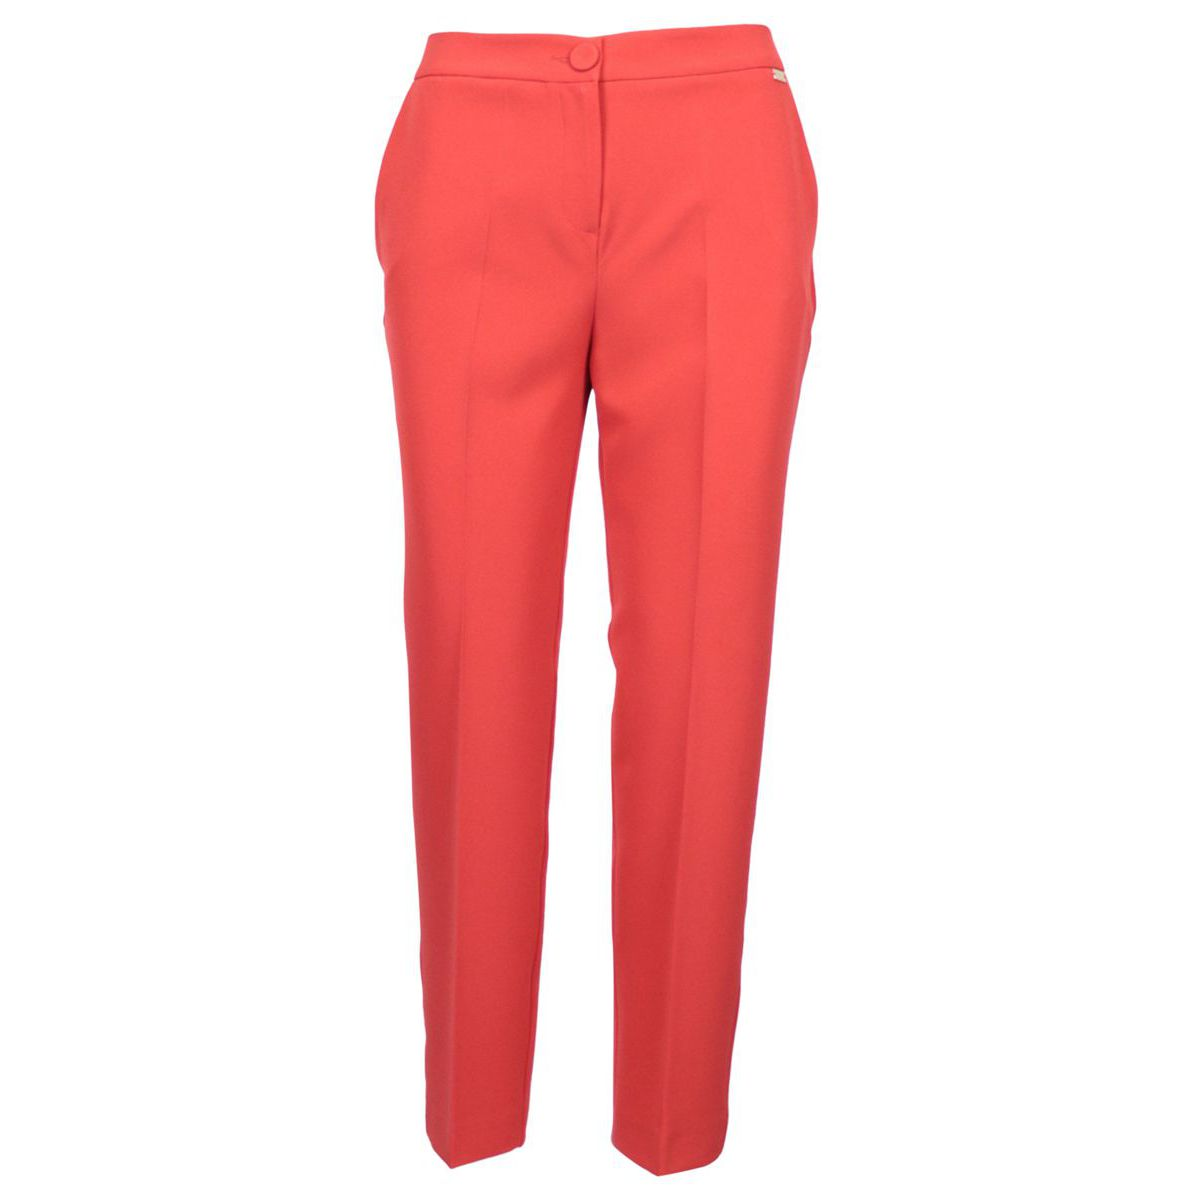 Erika crepe trousers with ironed crease and welt pockets Coral Nenette